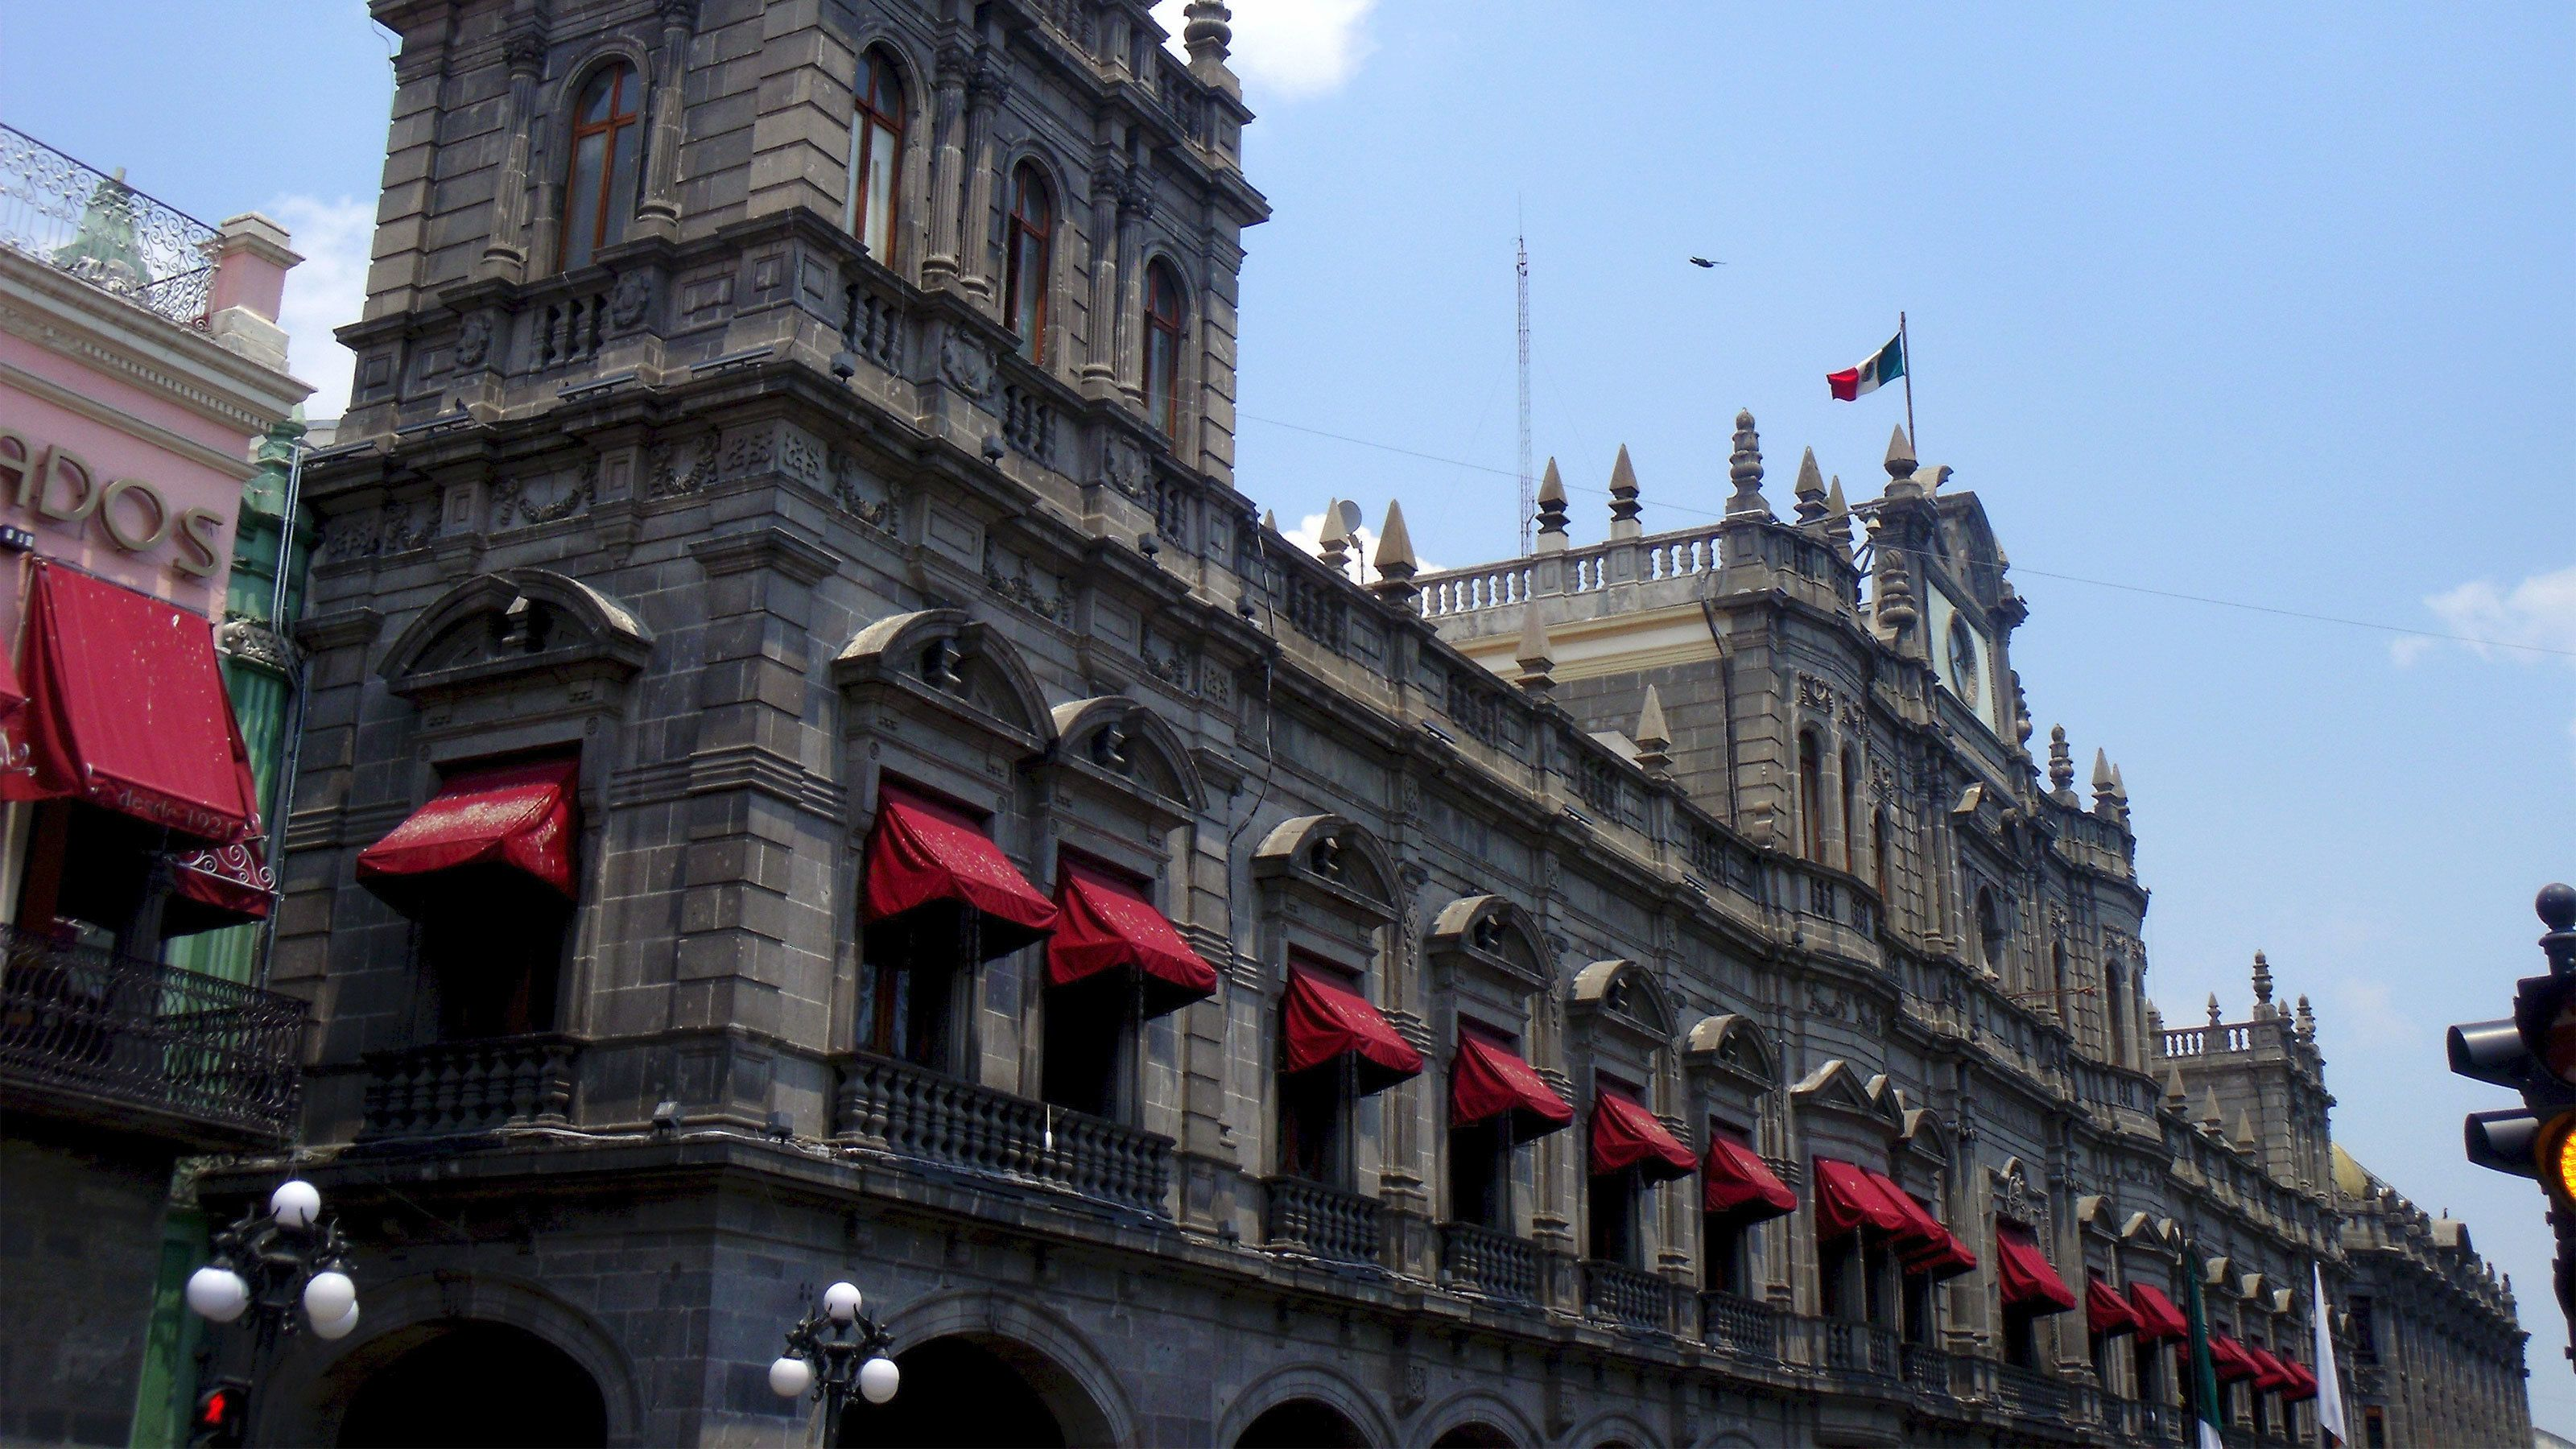 Close view of a building in Puebla